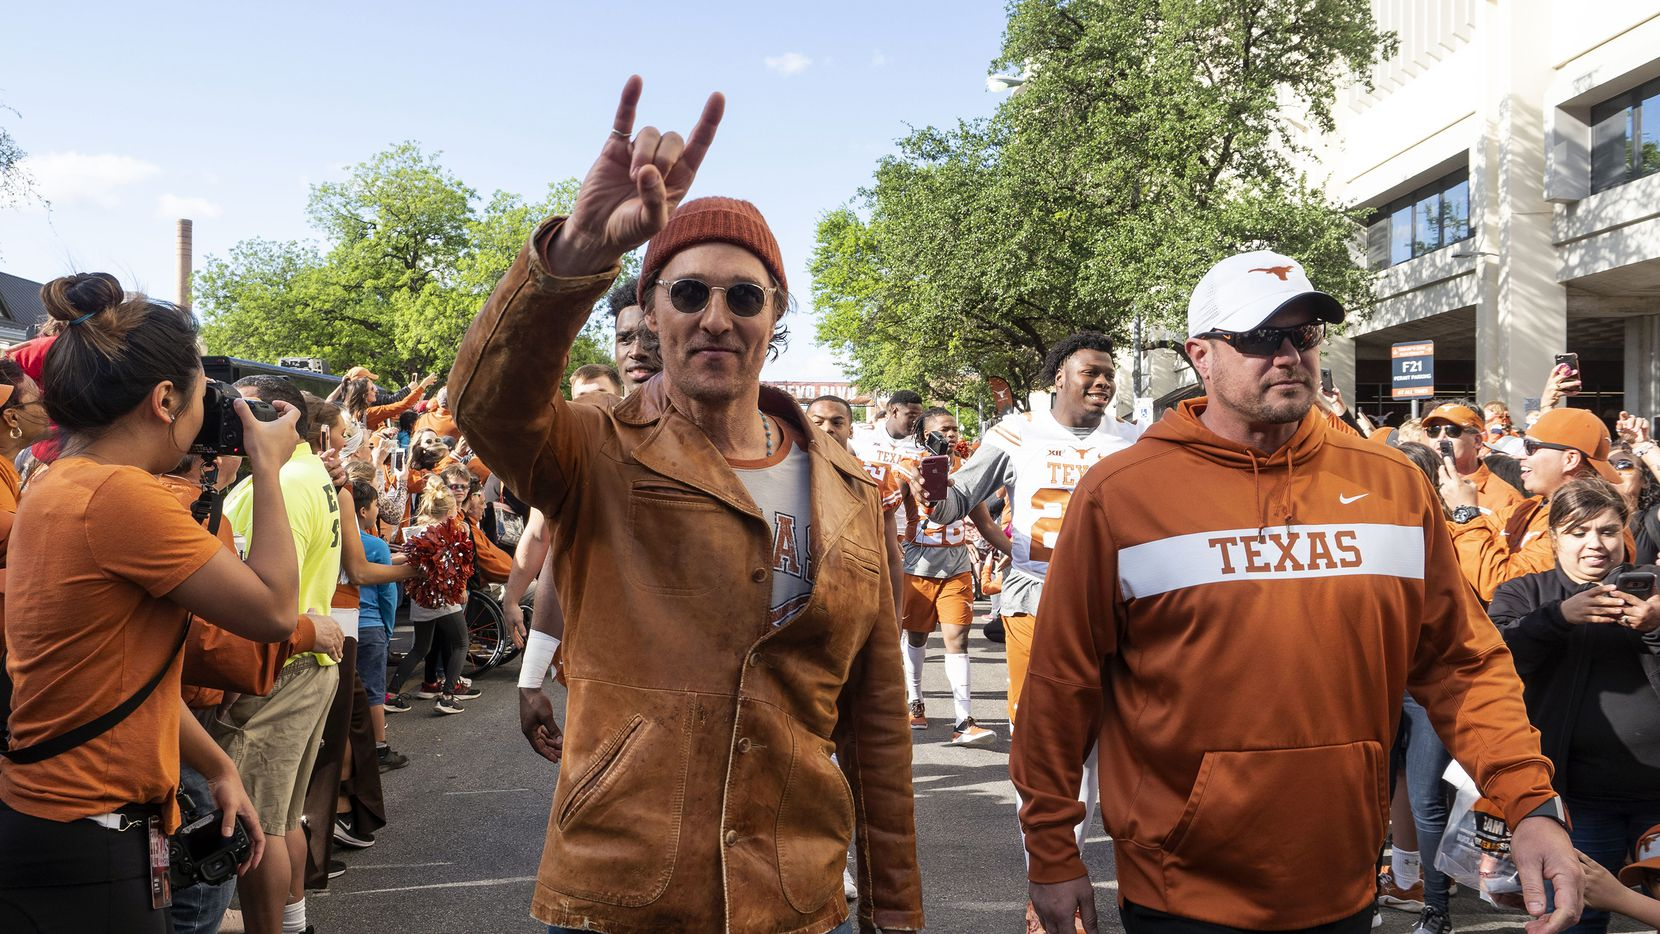 Actor Matthew McConaughey (left) and University of Texas football coach Tom Herman marched with players before the start of the Orange and White spring game in April.